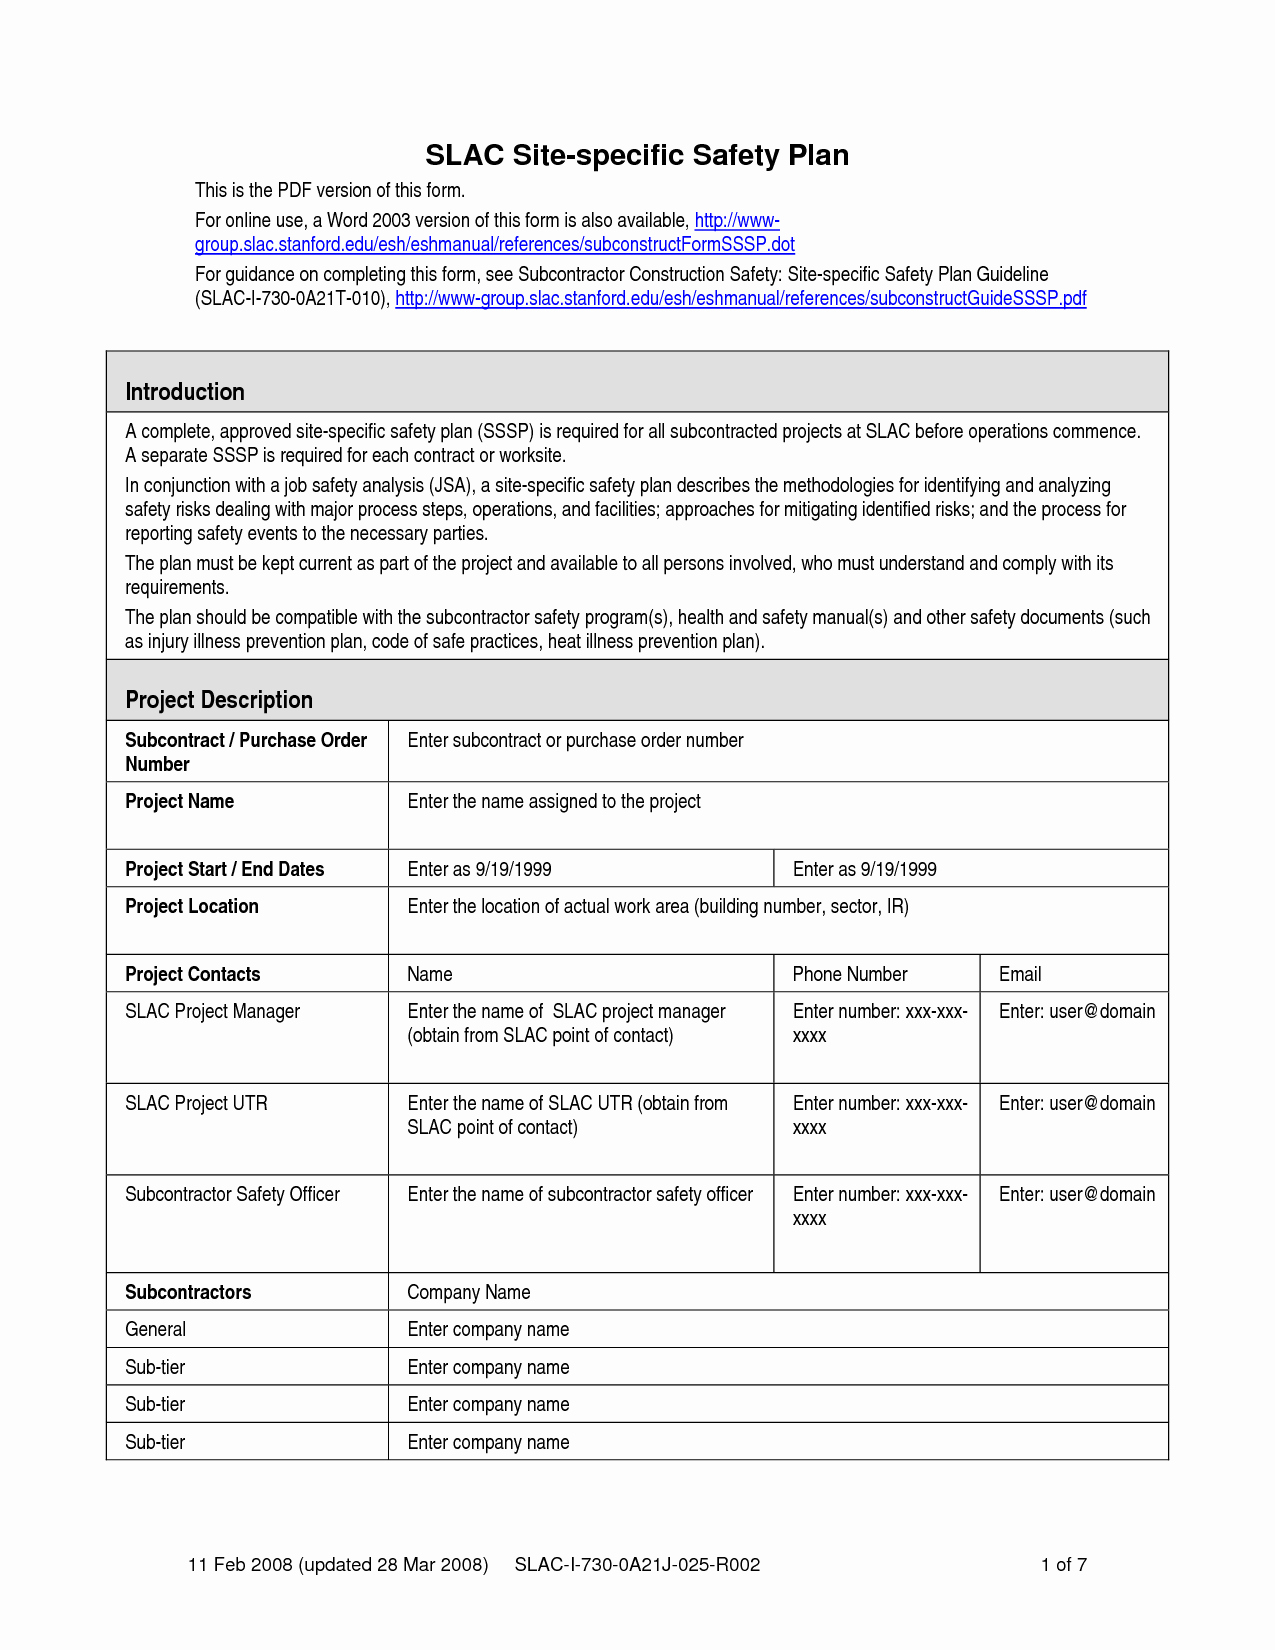 Construction Safety Plan Template Fresh Safety Plan Template